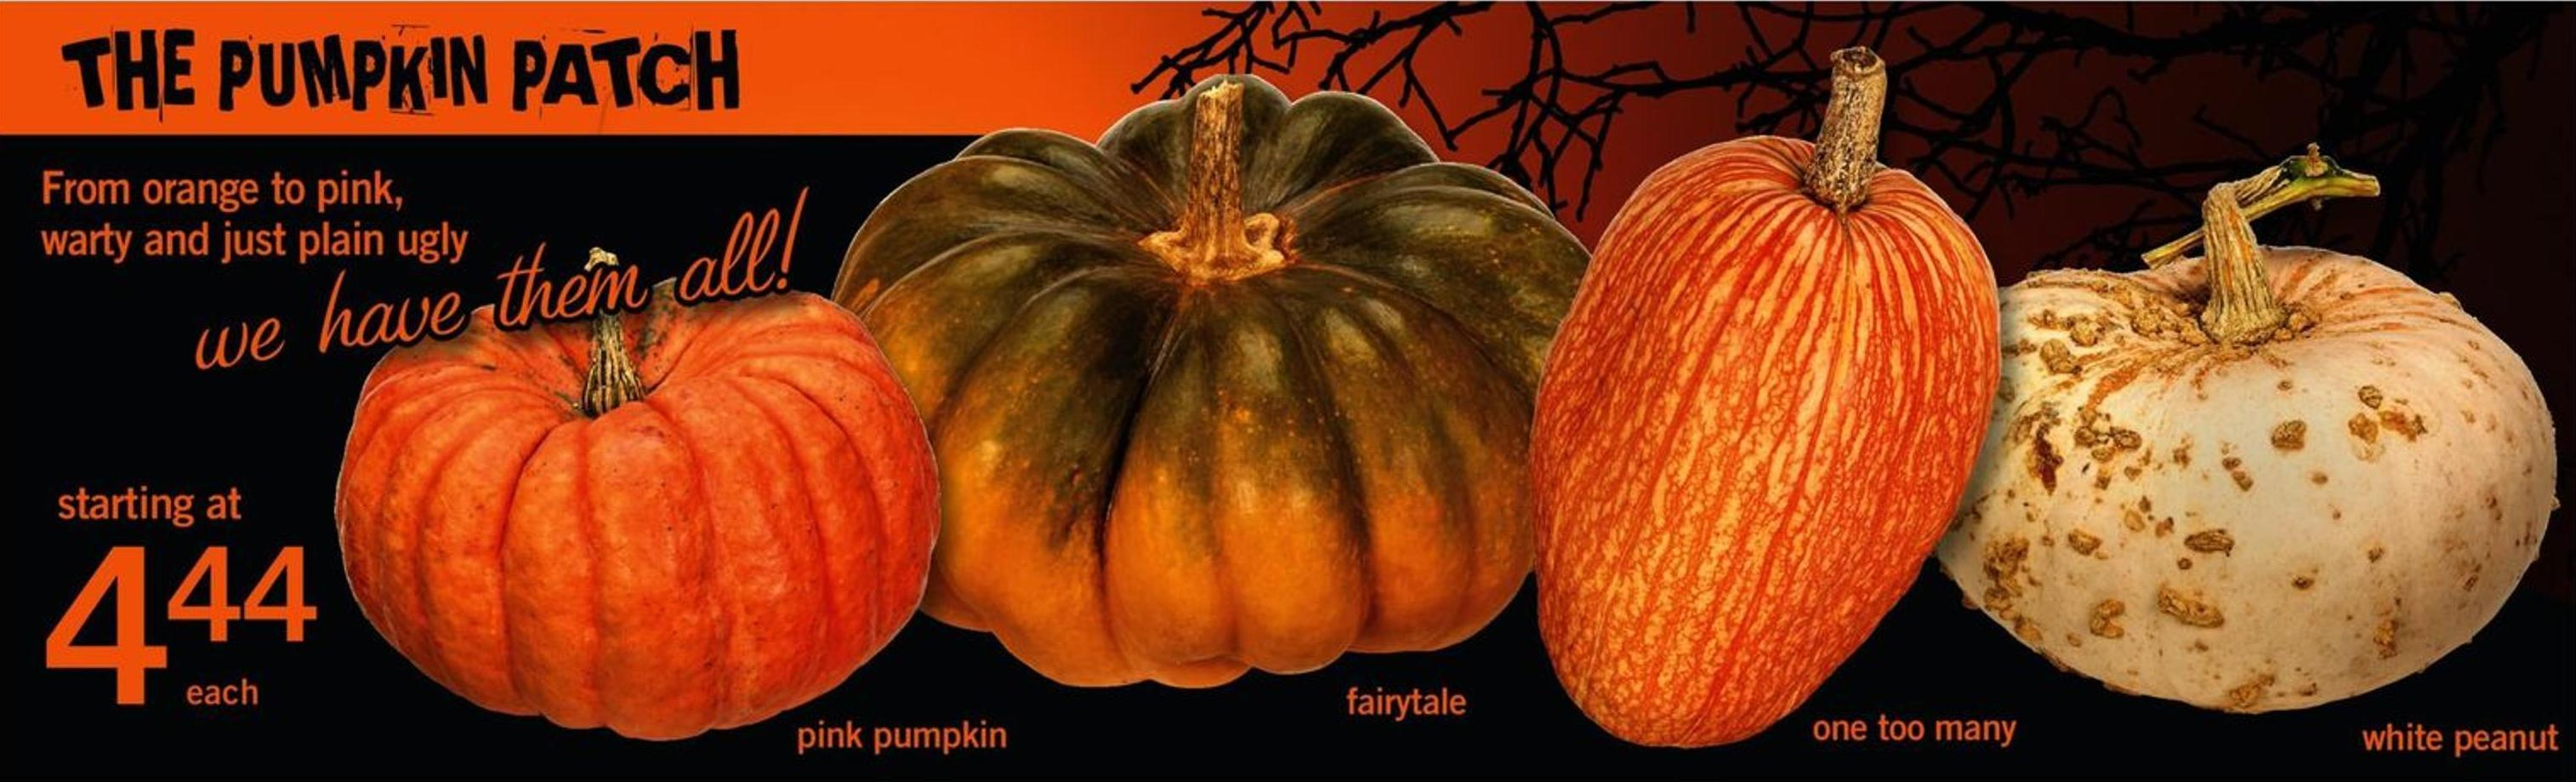 Pink Pumpkin - Fairytale - One Too Many - White Peanut